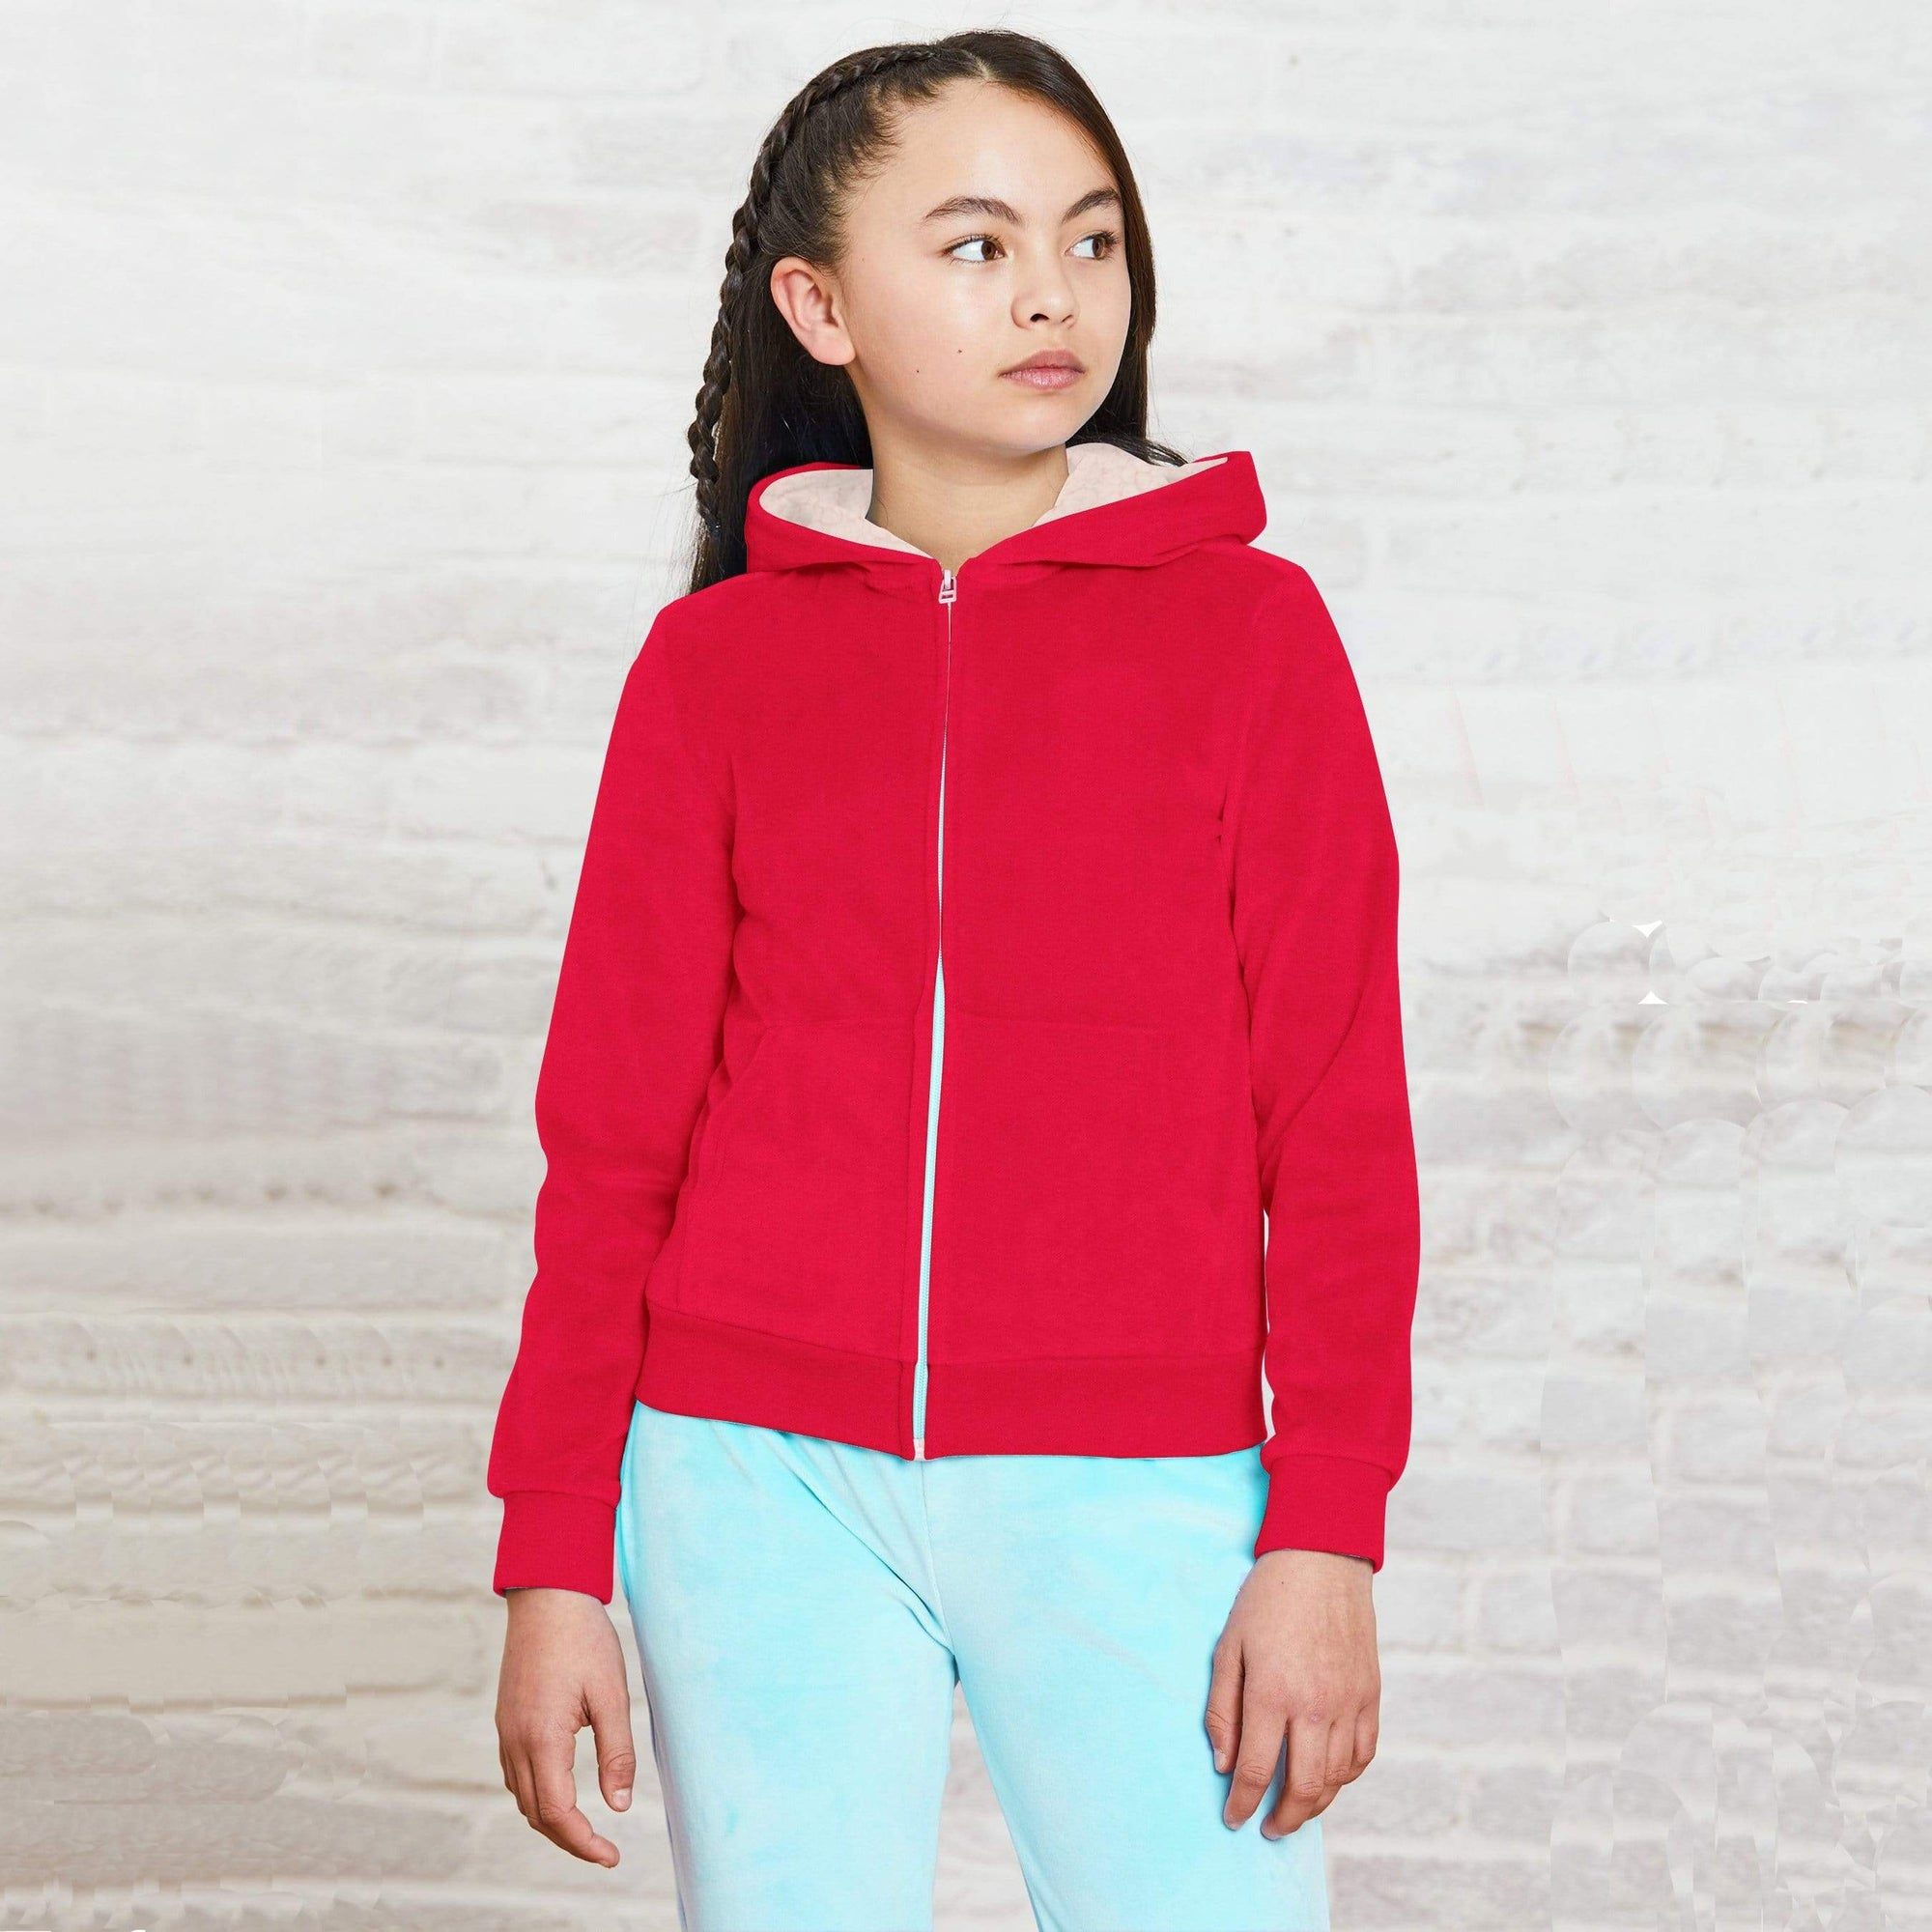 Stone Harbor Kid's Hoodie Girl's Stone Harbor Volcana Fur Lined Zipper Hoodie